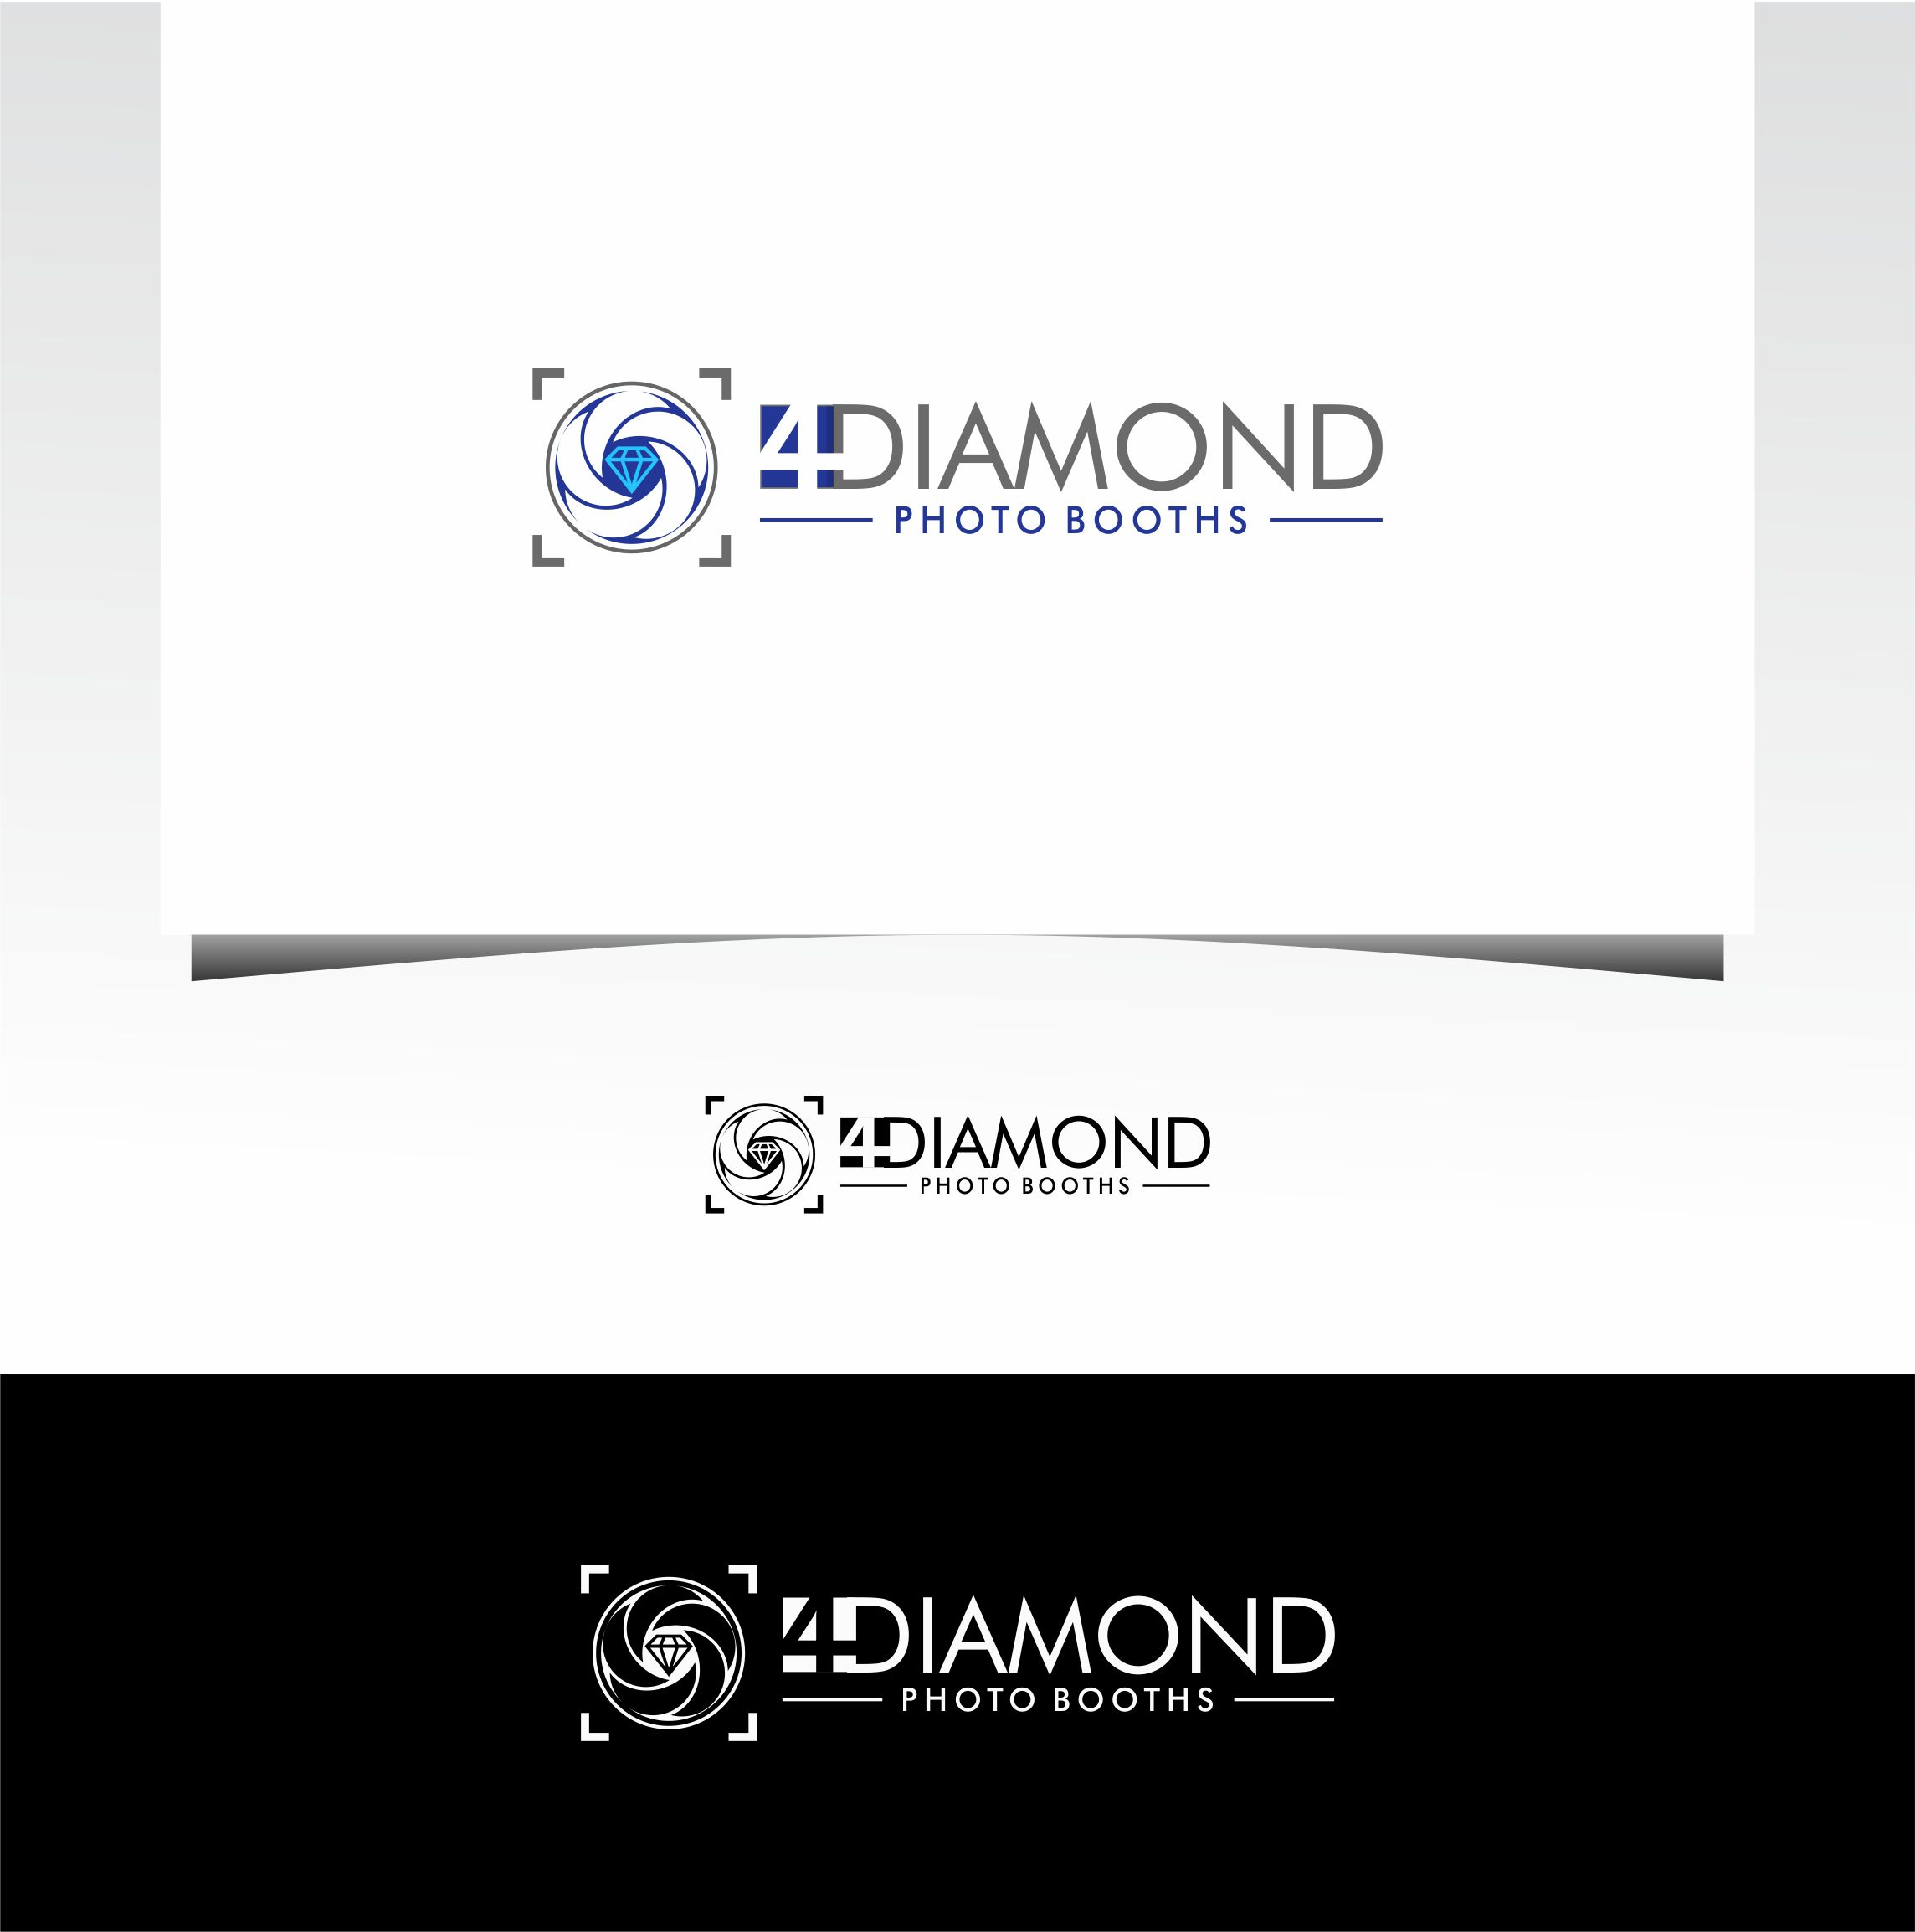 Logo Design by Raymond Garcia - Entry No. 26 in the Logo Design Contest Creative Logo Design for 4 Diamond Photo Booths.